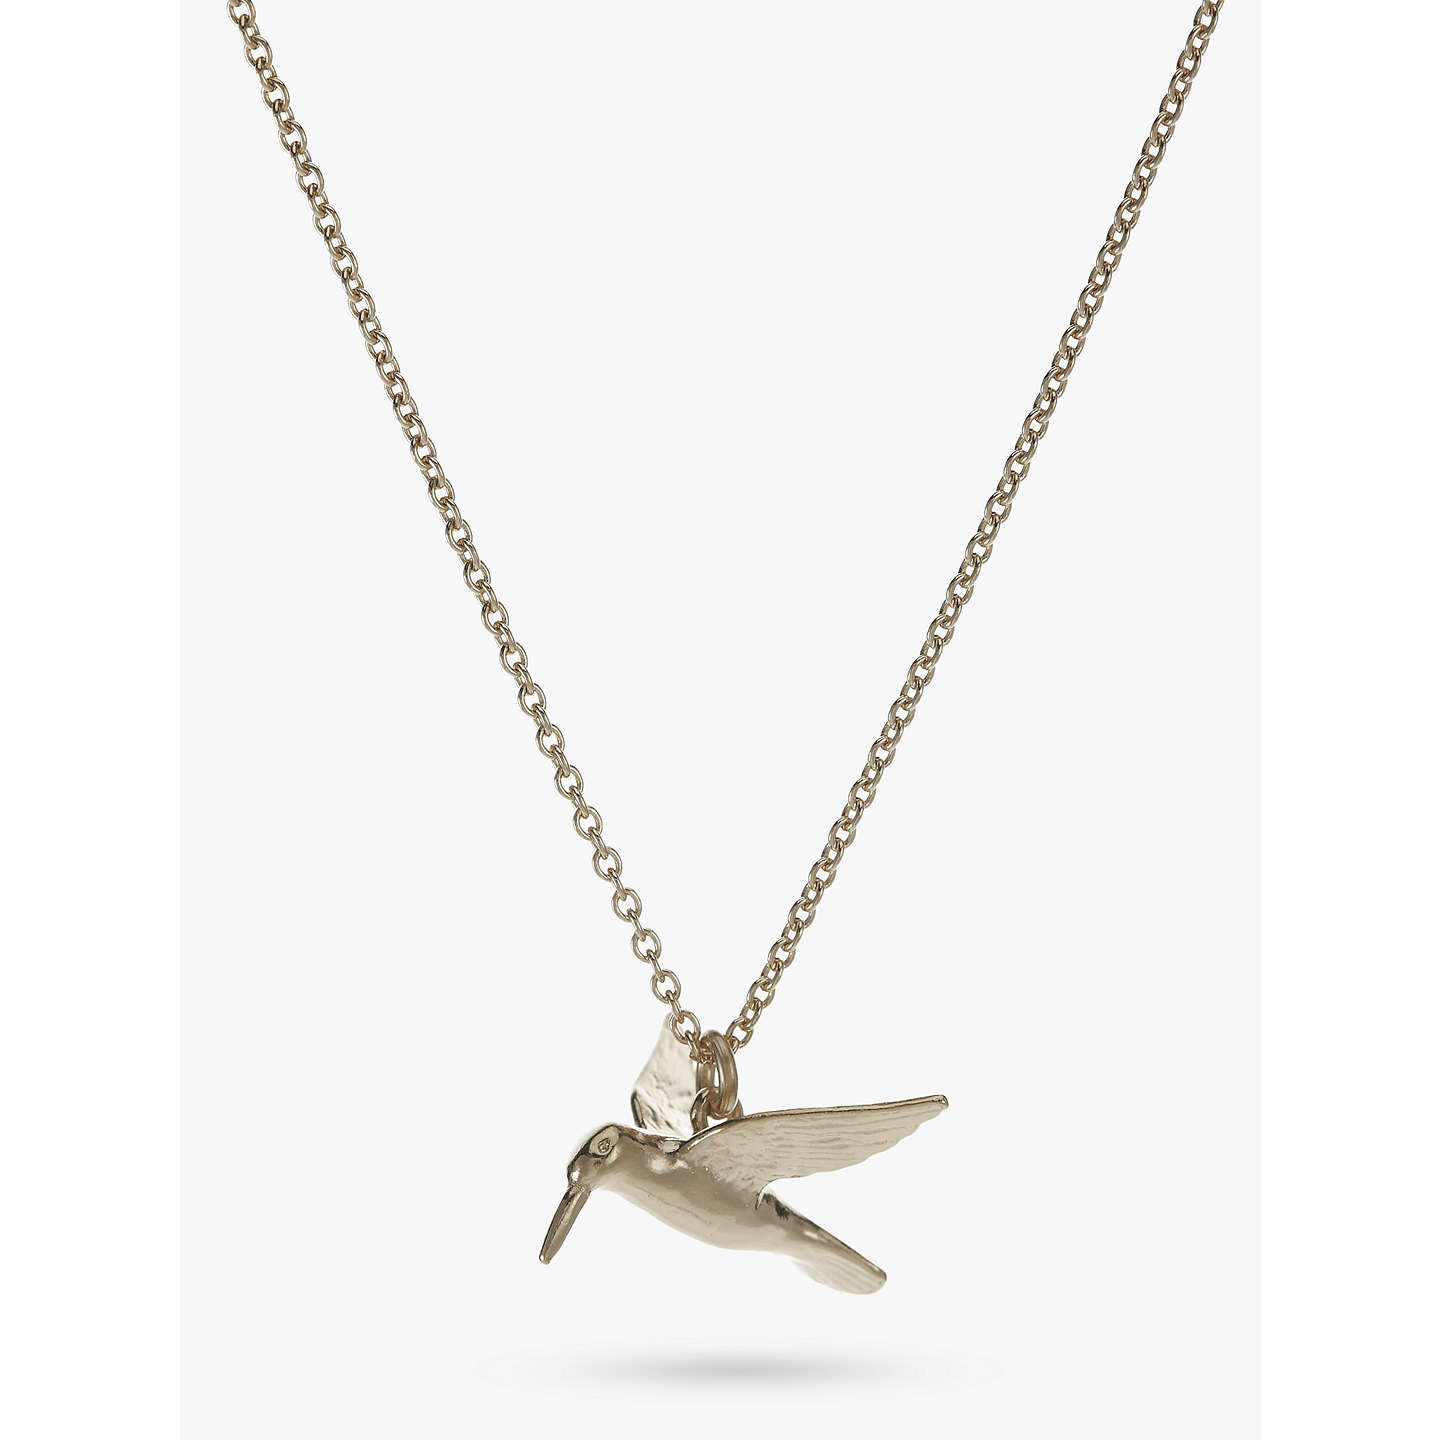 by silver hummingbird gaamaa necklace original product com notonthehighstreet